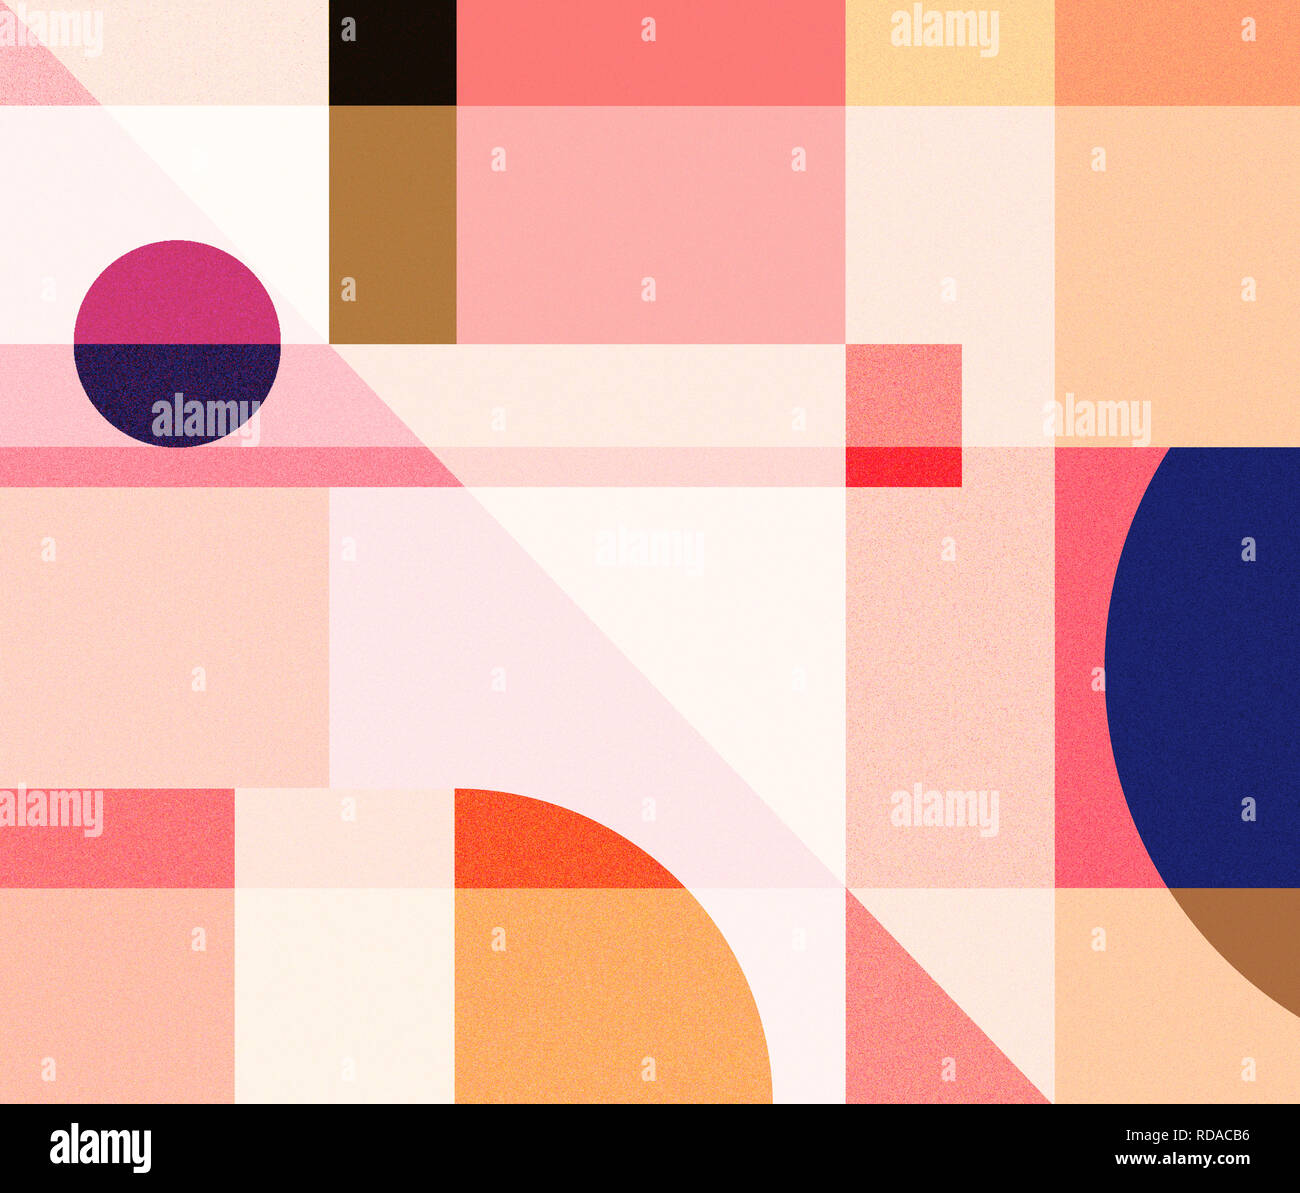 Abstract vector geometrical poster artwork with simple pattern shapes and minimalistic figures. - Stock Image